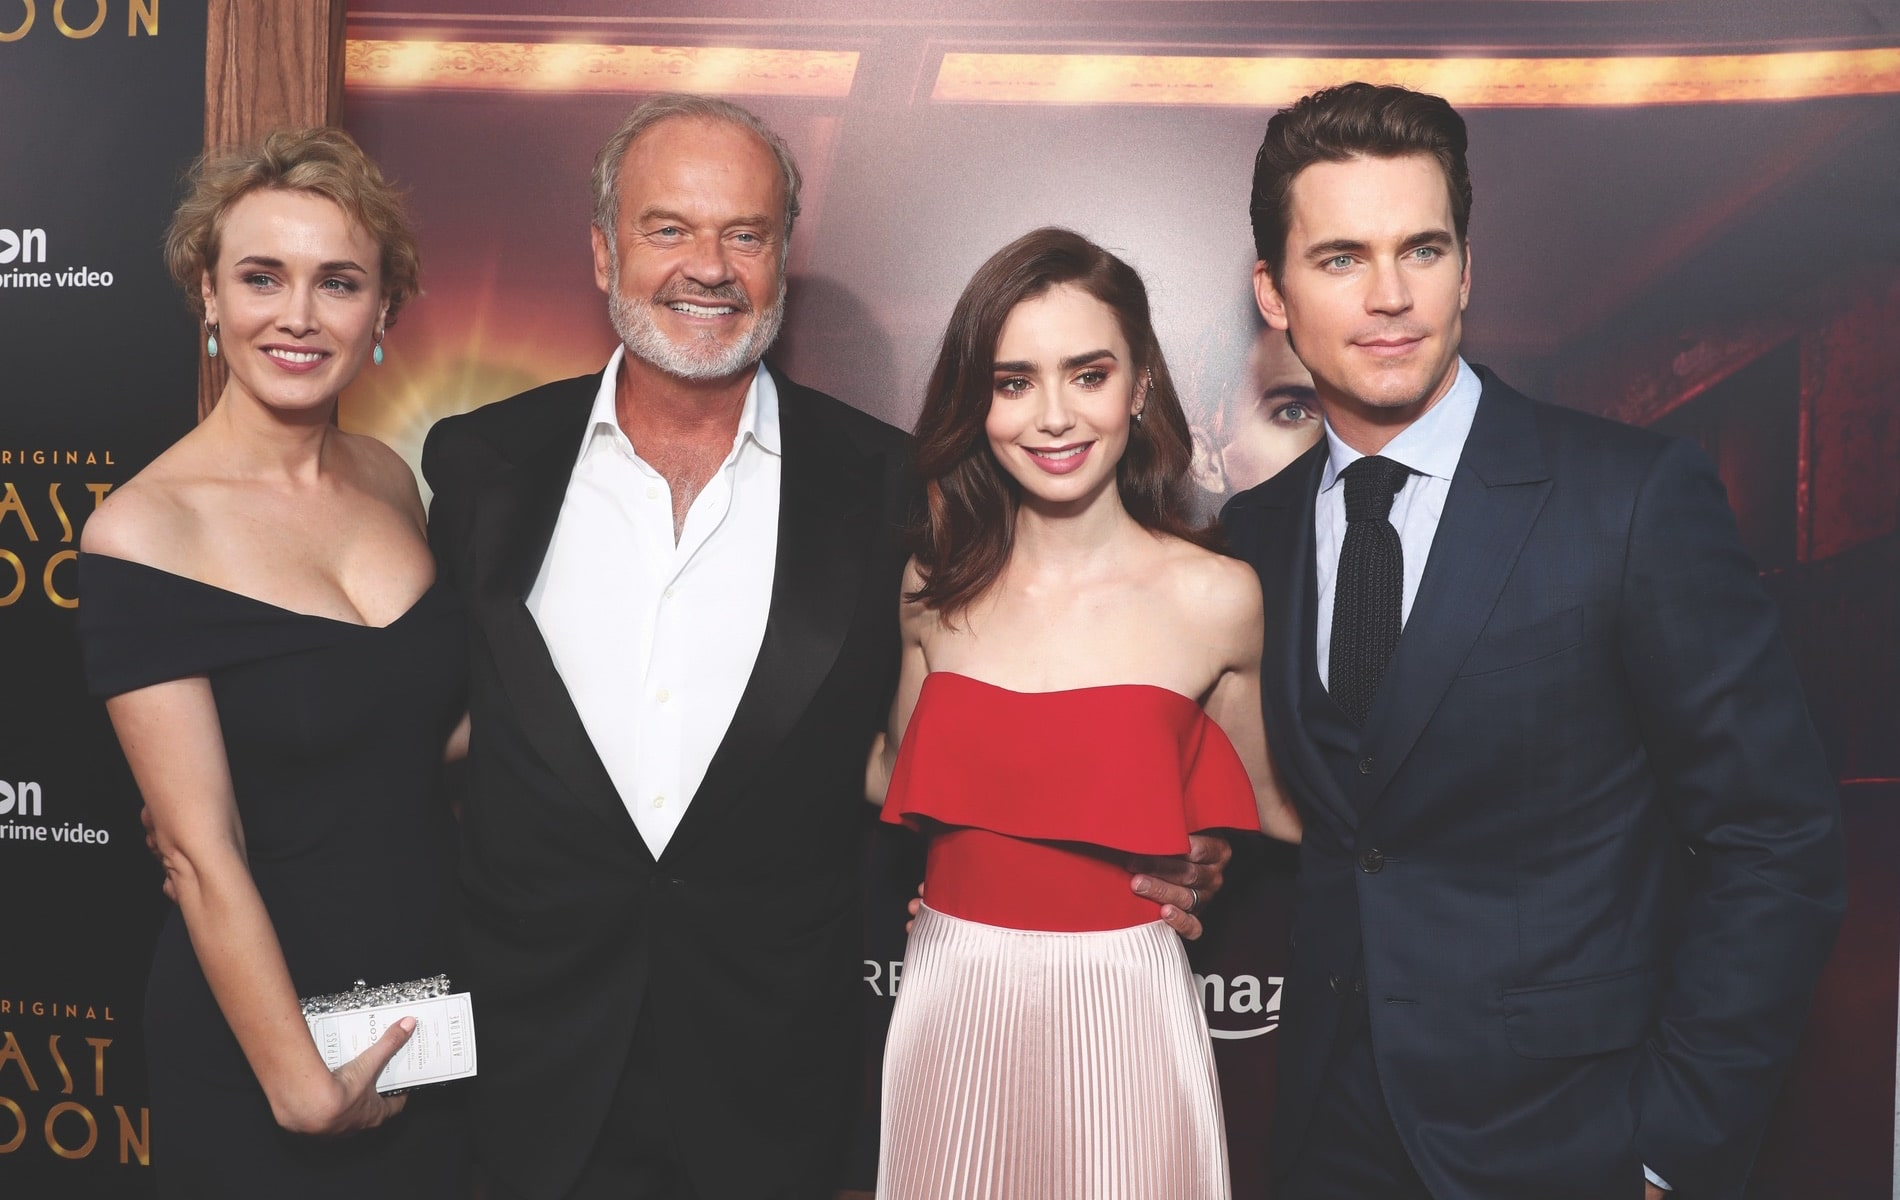 Arts Culture and Entertainment, celebrities, Amazon, Amazon Prime Video, The Last Tycoon, Harmony Gold Theatre, Los Angeles, California, Dominique McElligott, Kelsey Grammer, Lily Collins, Matt Bomer